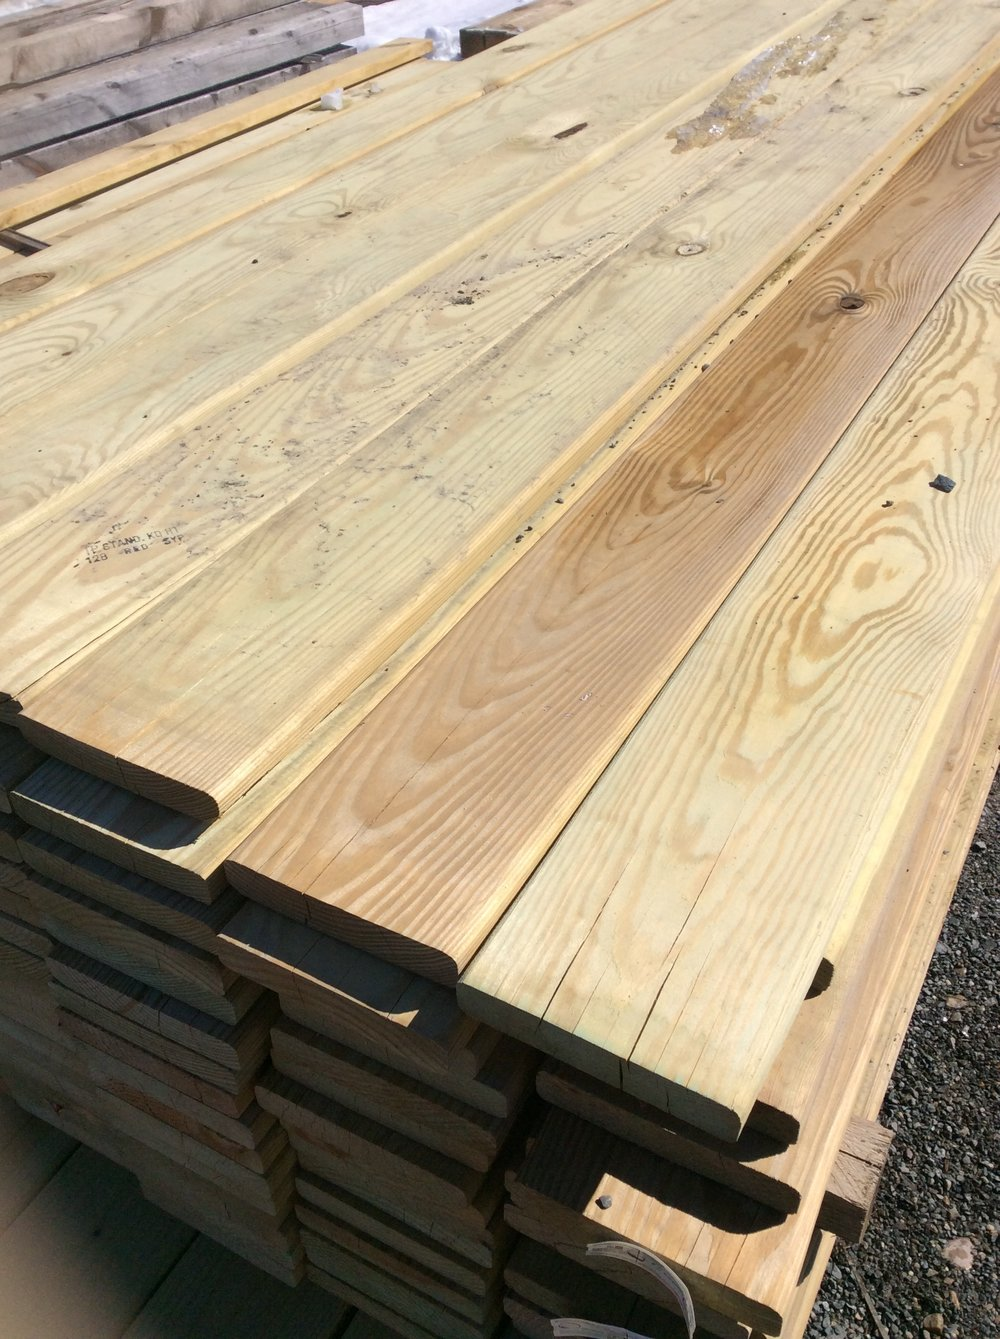 Pressure Treated Decking.JPG